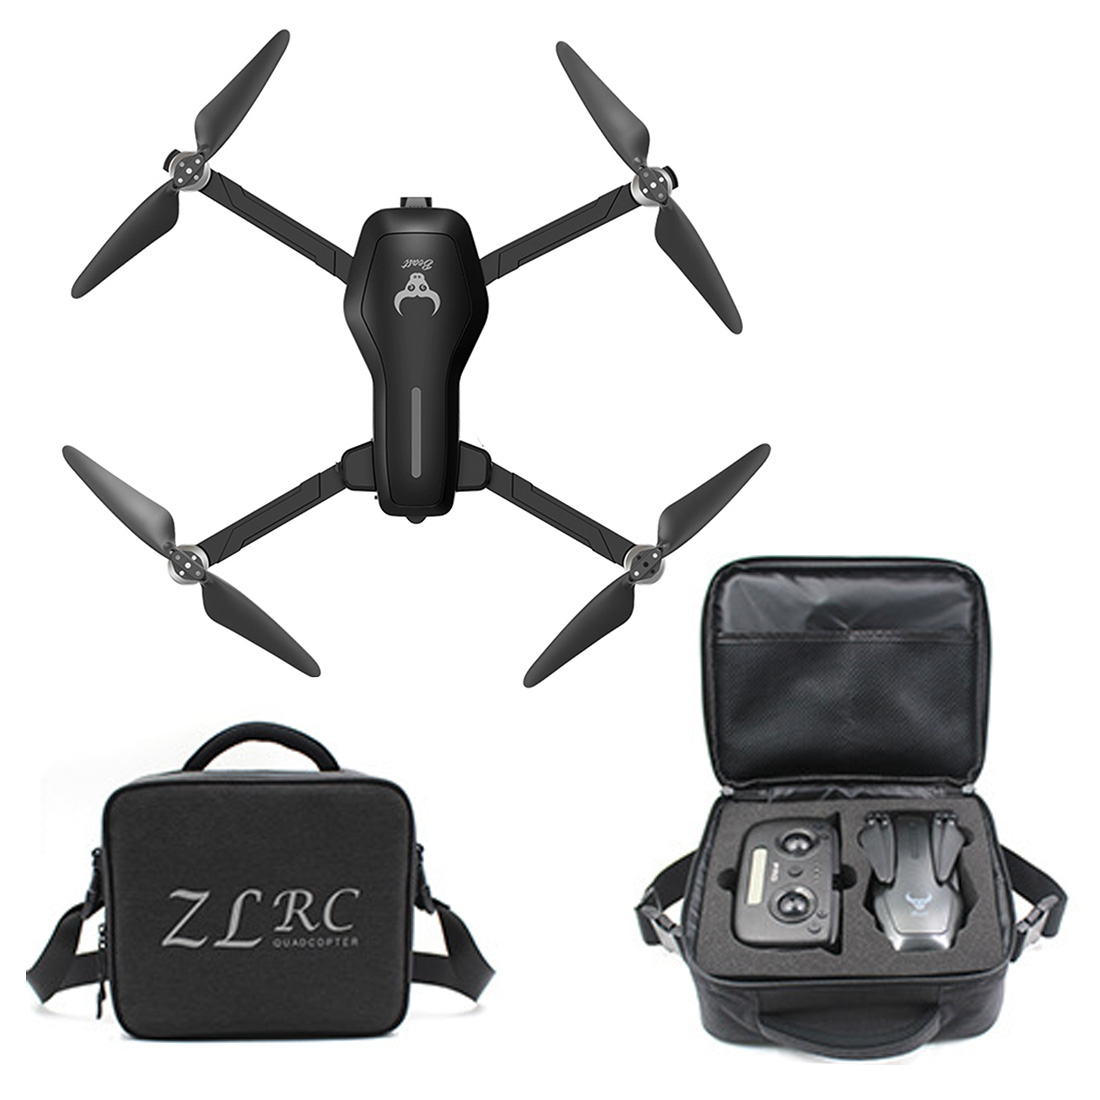 New SG906 PRO GPS <font><b>Drone</b></font> 2-axis Anti-shake Self-Stabilize Stable Gimbal 25 Mins Flight WiFi FPV 4K Camera <font><b>Brushless</b></font> RC Quadcopter image